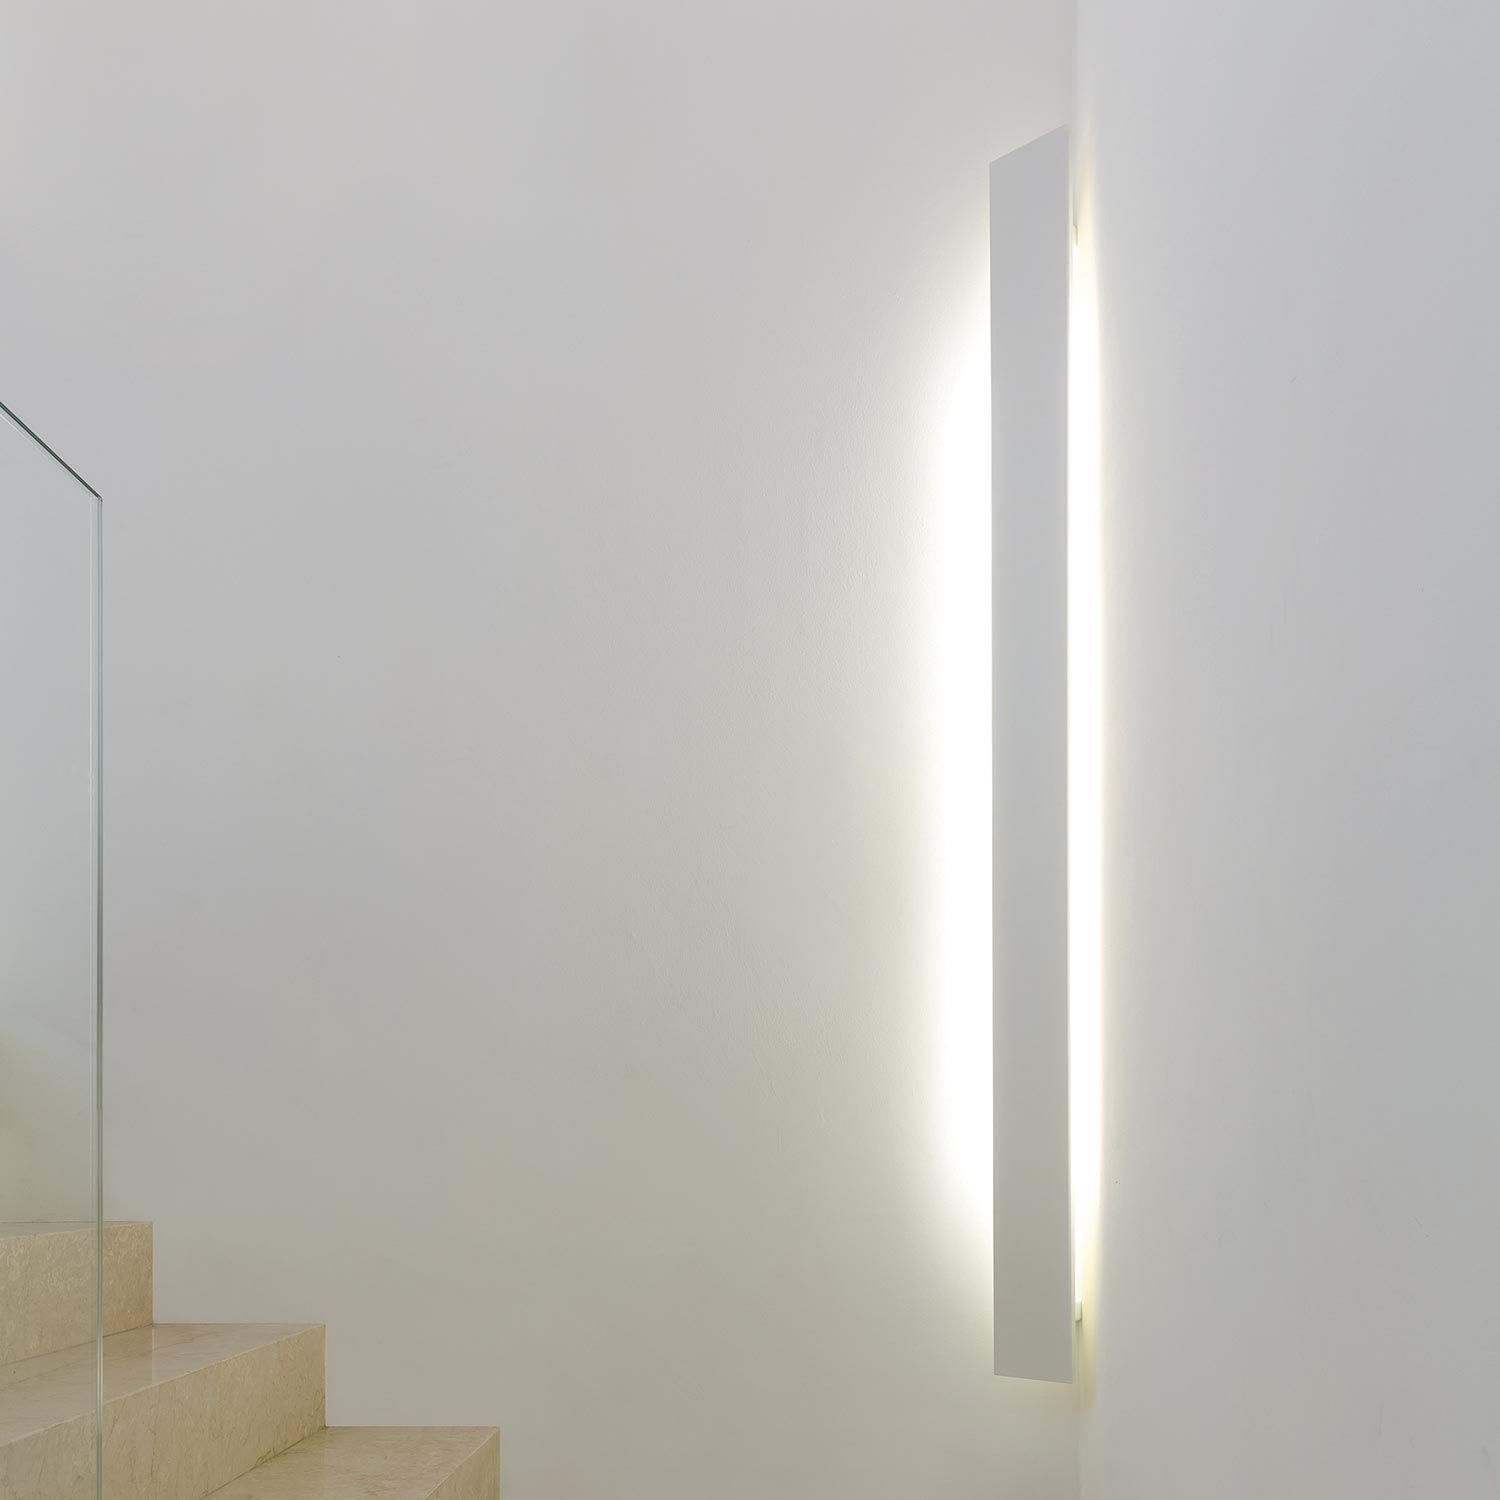 Wall Lighting Fixture Developed To Install The Lamp In Corners Obtain An Indirect Diffuse